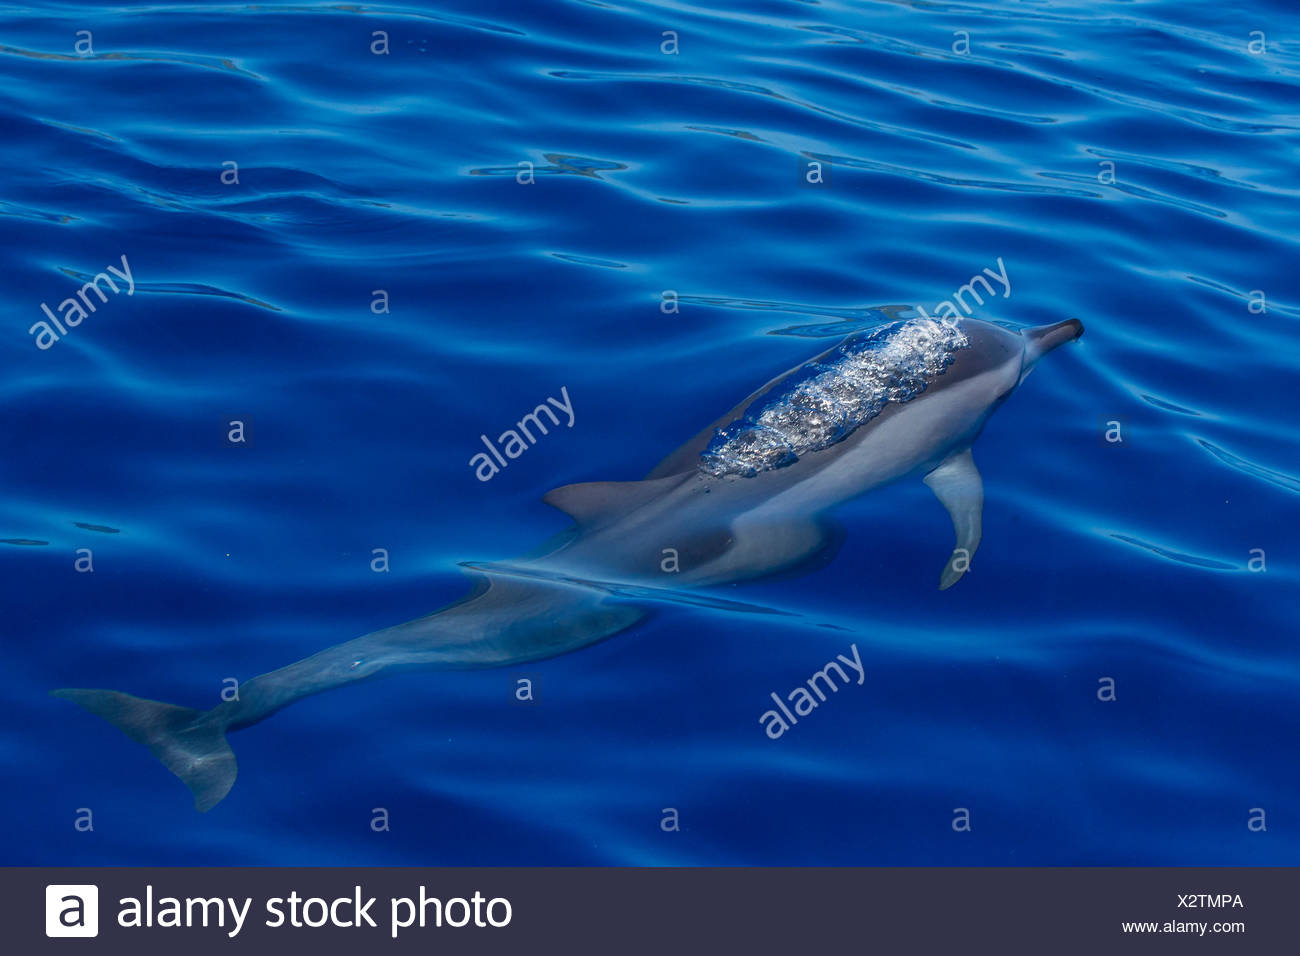 View from above of a spinner dolphin swimming on the ocean's surface. - Stock Image